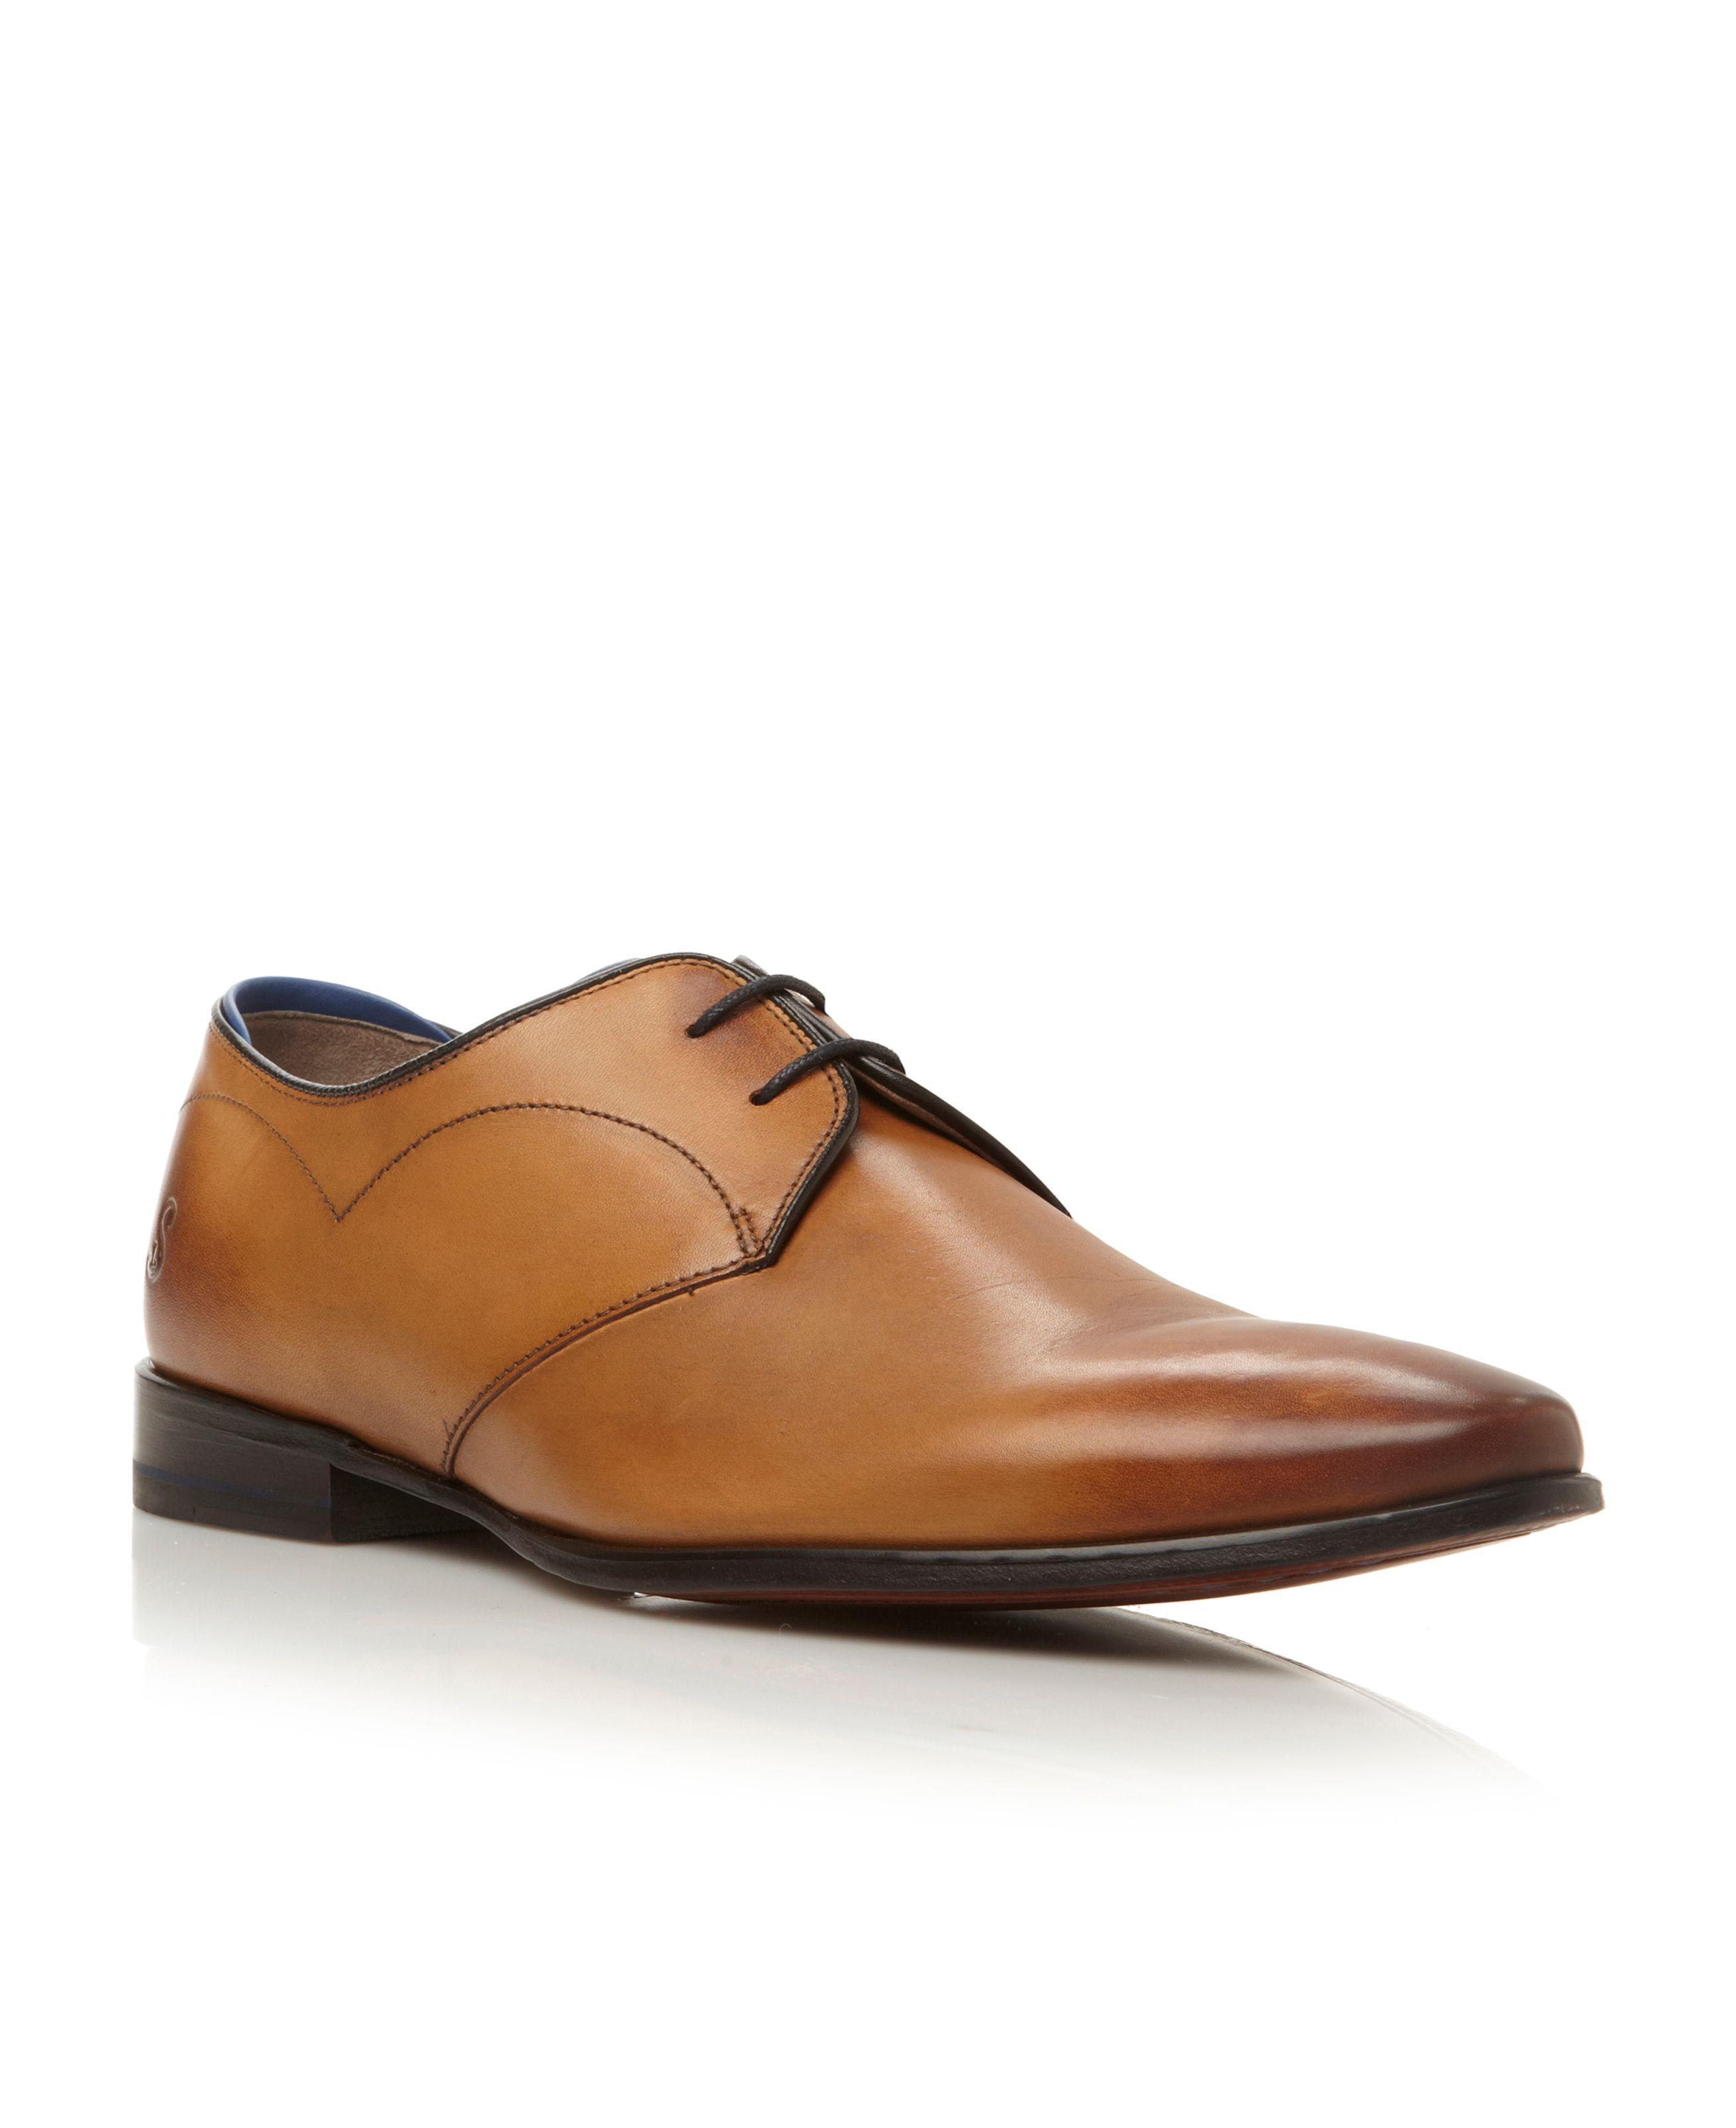 Morsang lace up 2 eye plain toe gibson shoes